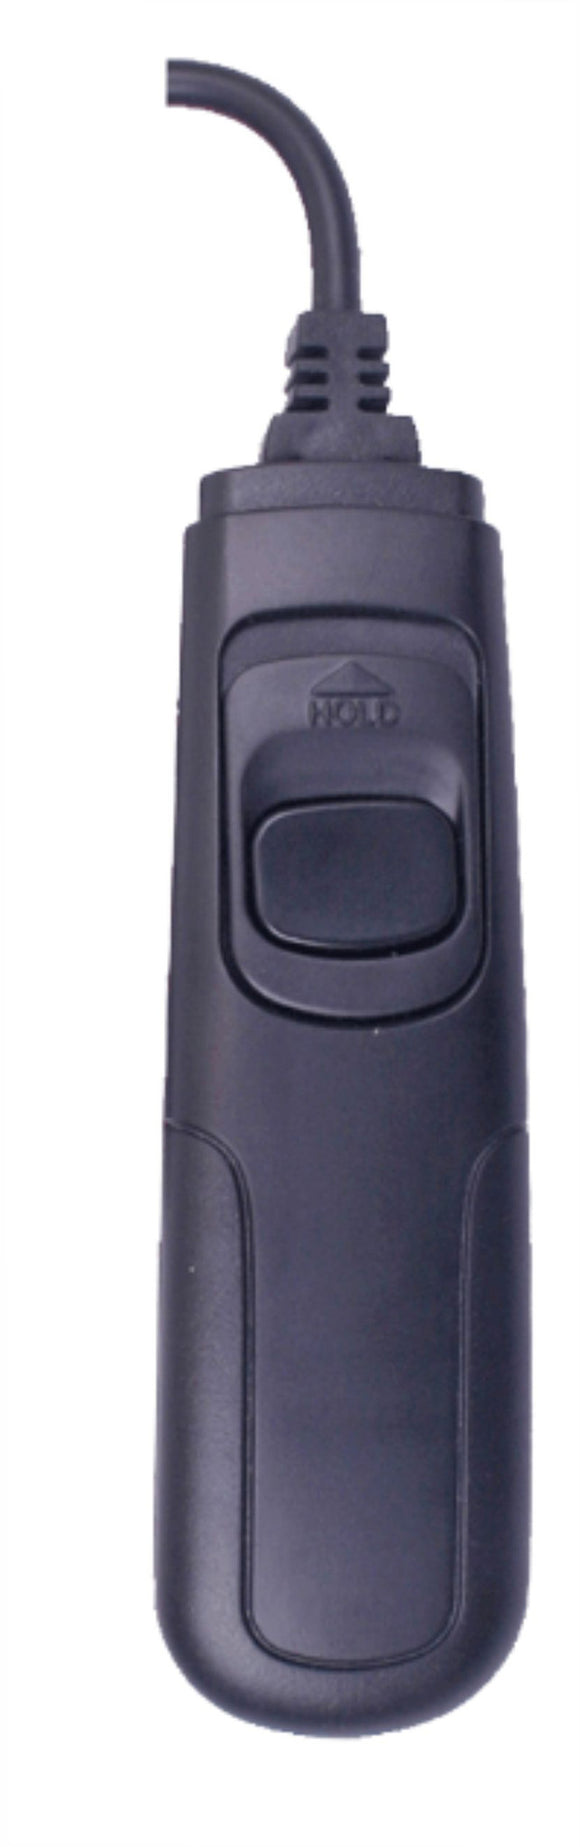 Wired Shutter Release for Nikon D